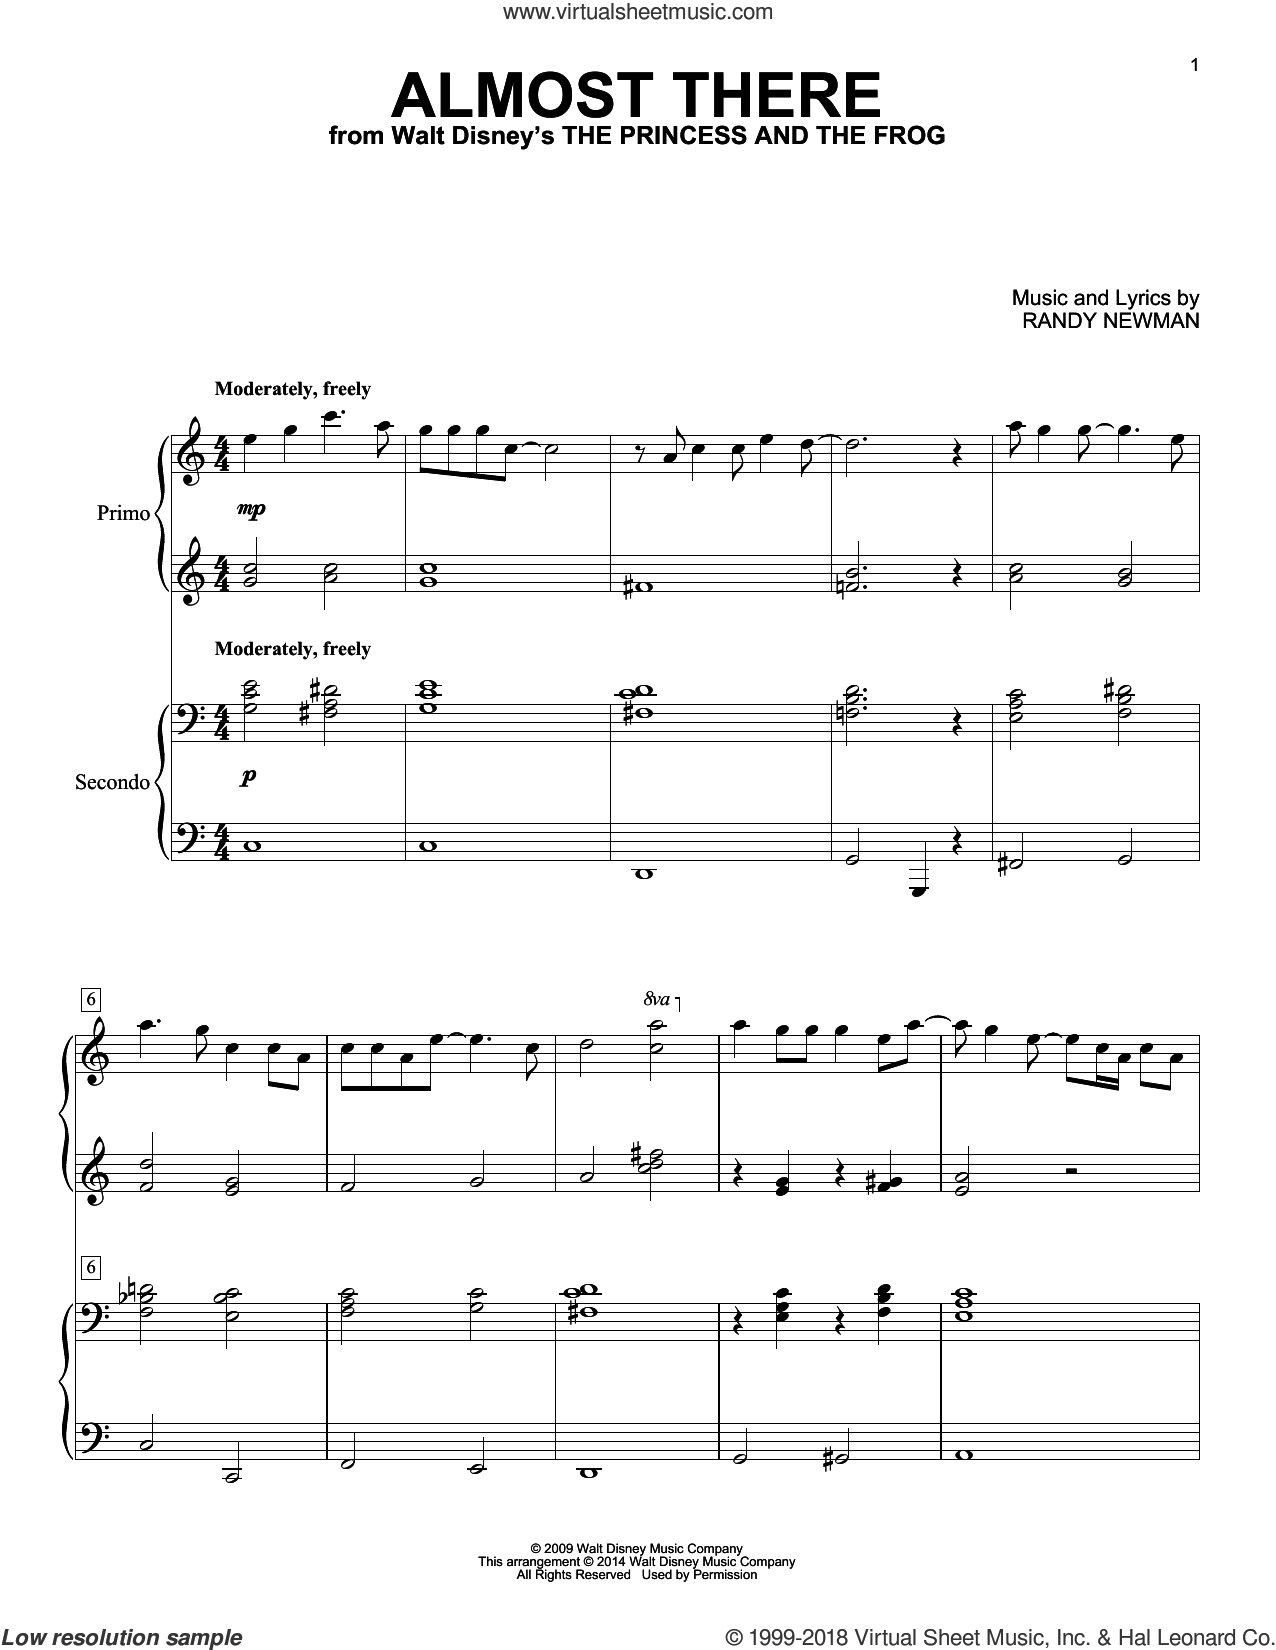 Almost There sheet music for piano four hands by Randy Newman, intermediate skill level